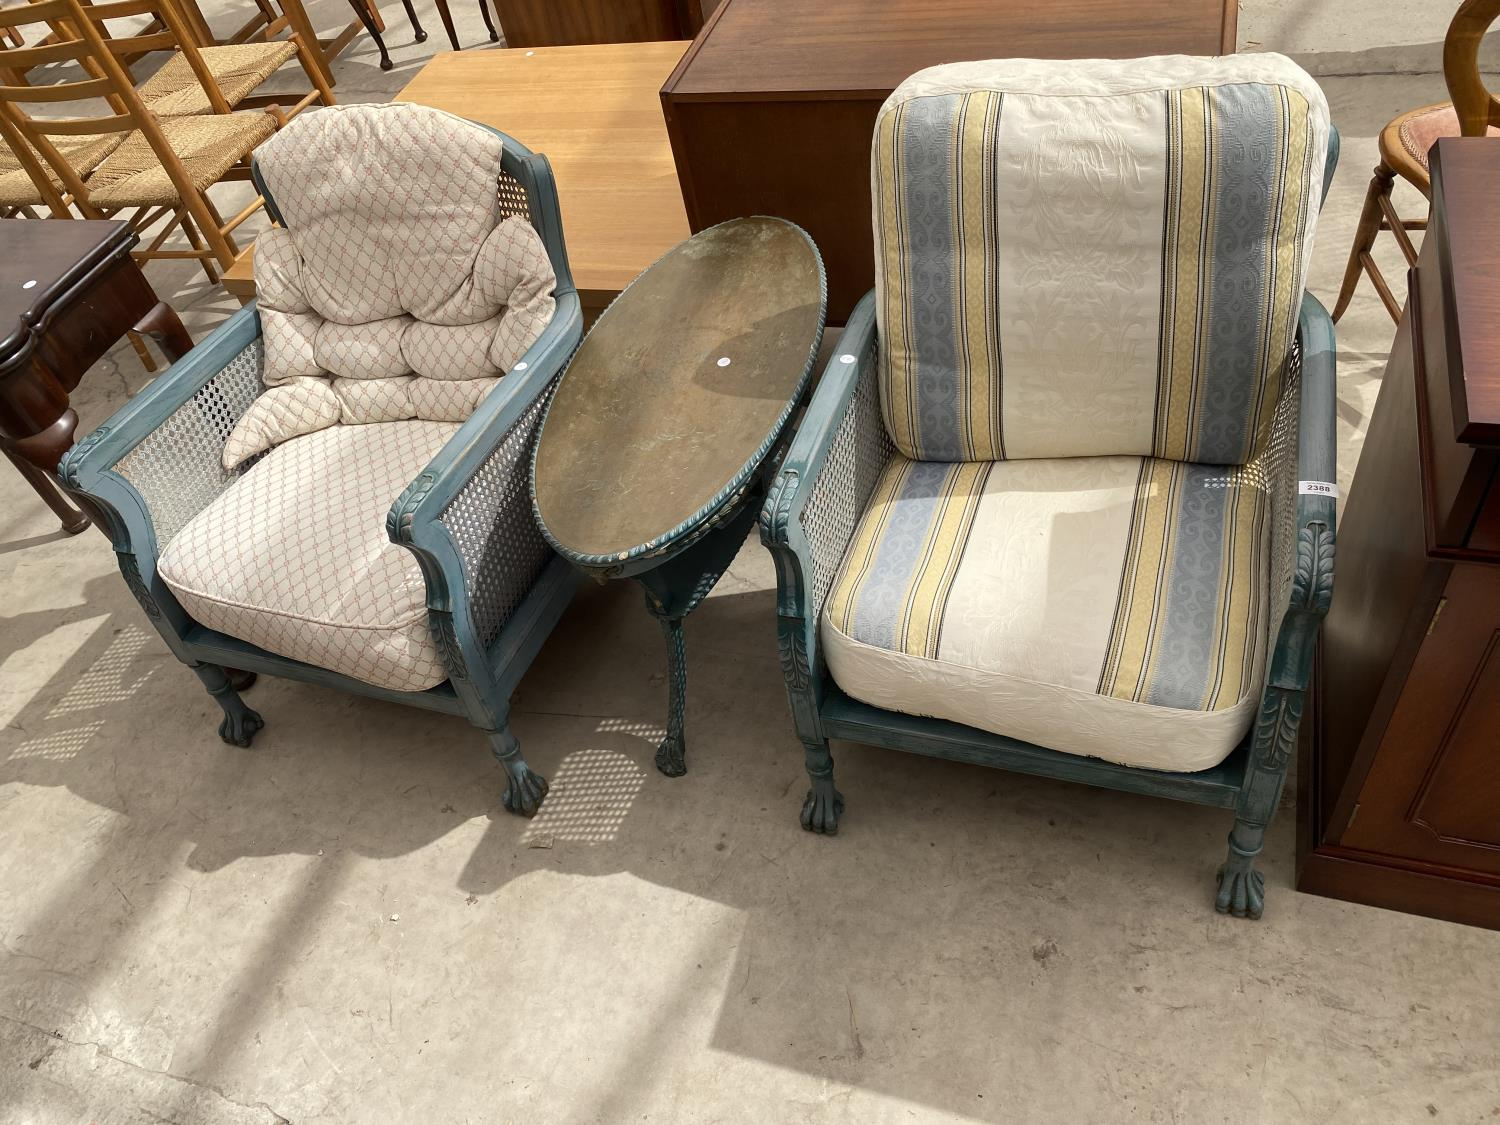 A PAIR OF EARLY 20TH CENTURY BERGERE FIRESIDE CHAIRS ON CLAW FEET, HAVING SHABBY CHIC PAINTING,